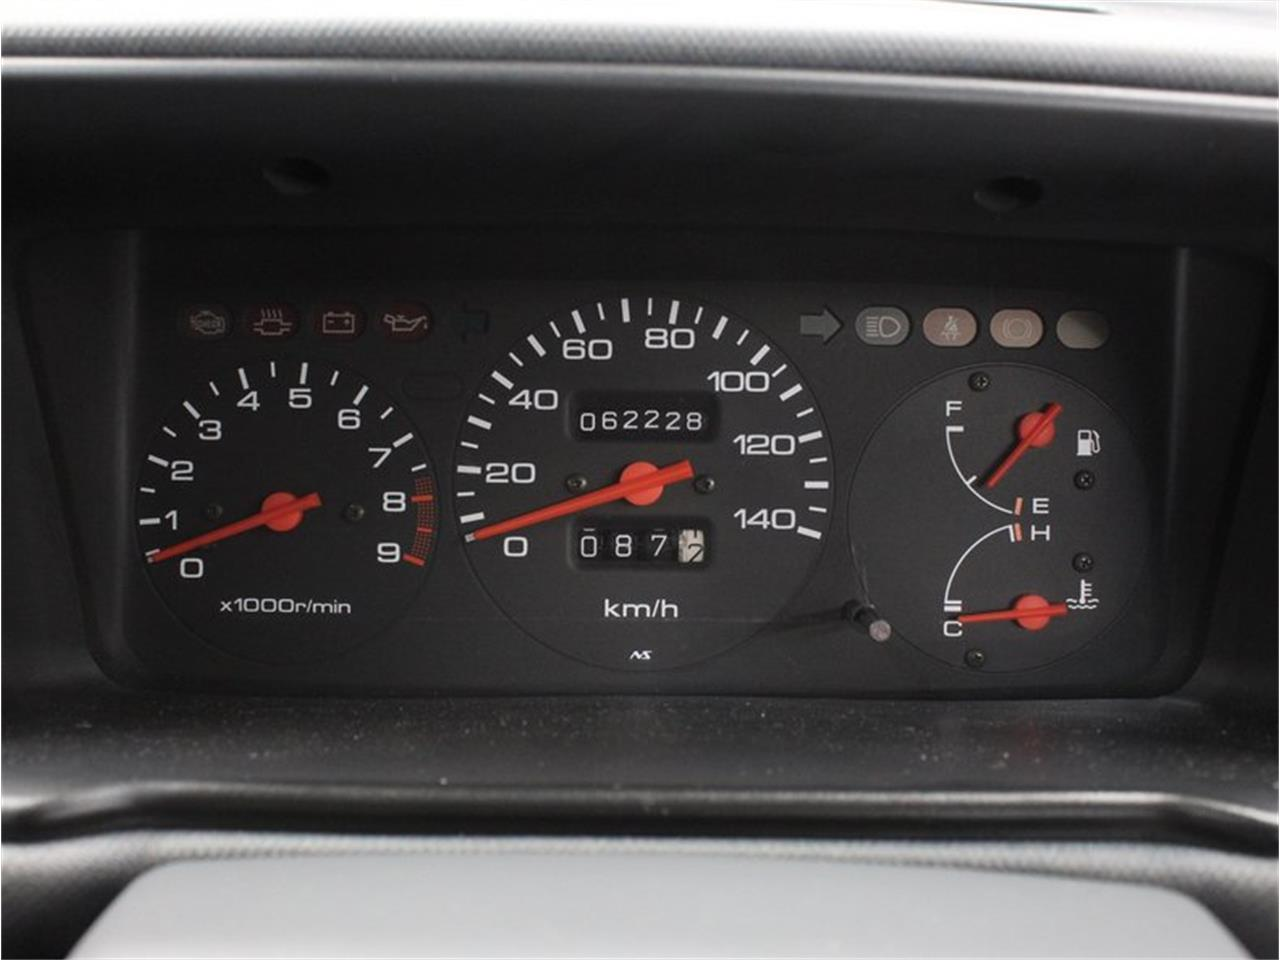 1993 Honda Today (CC-1378728) for sale in Christiansburg, Virginia